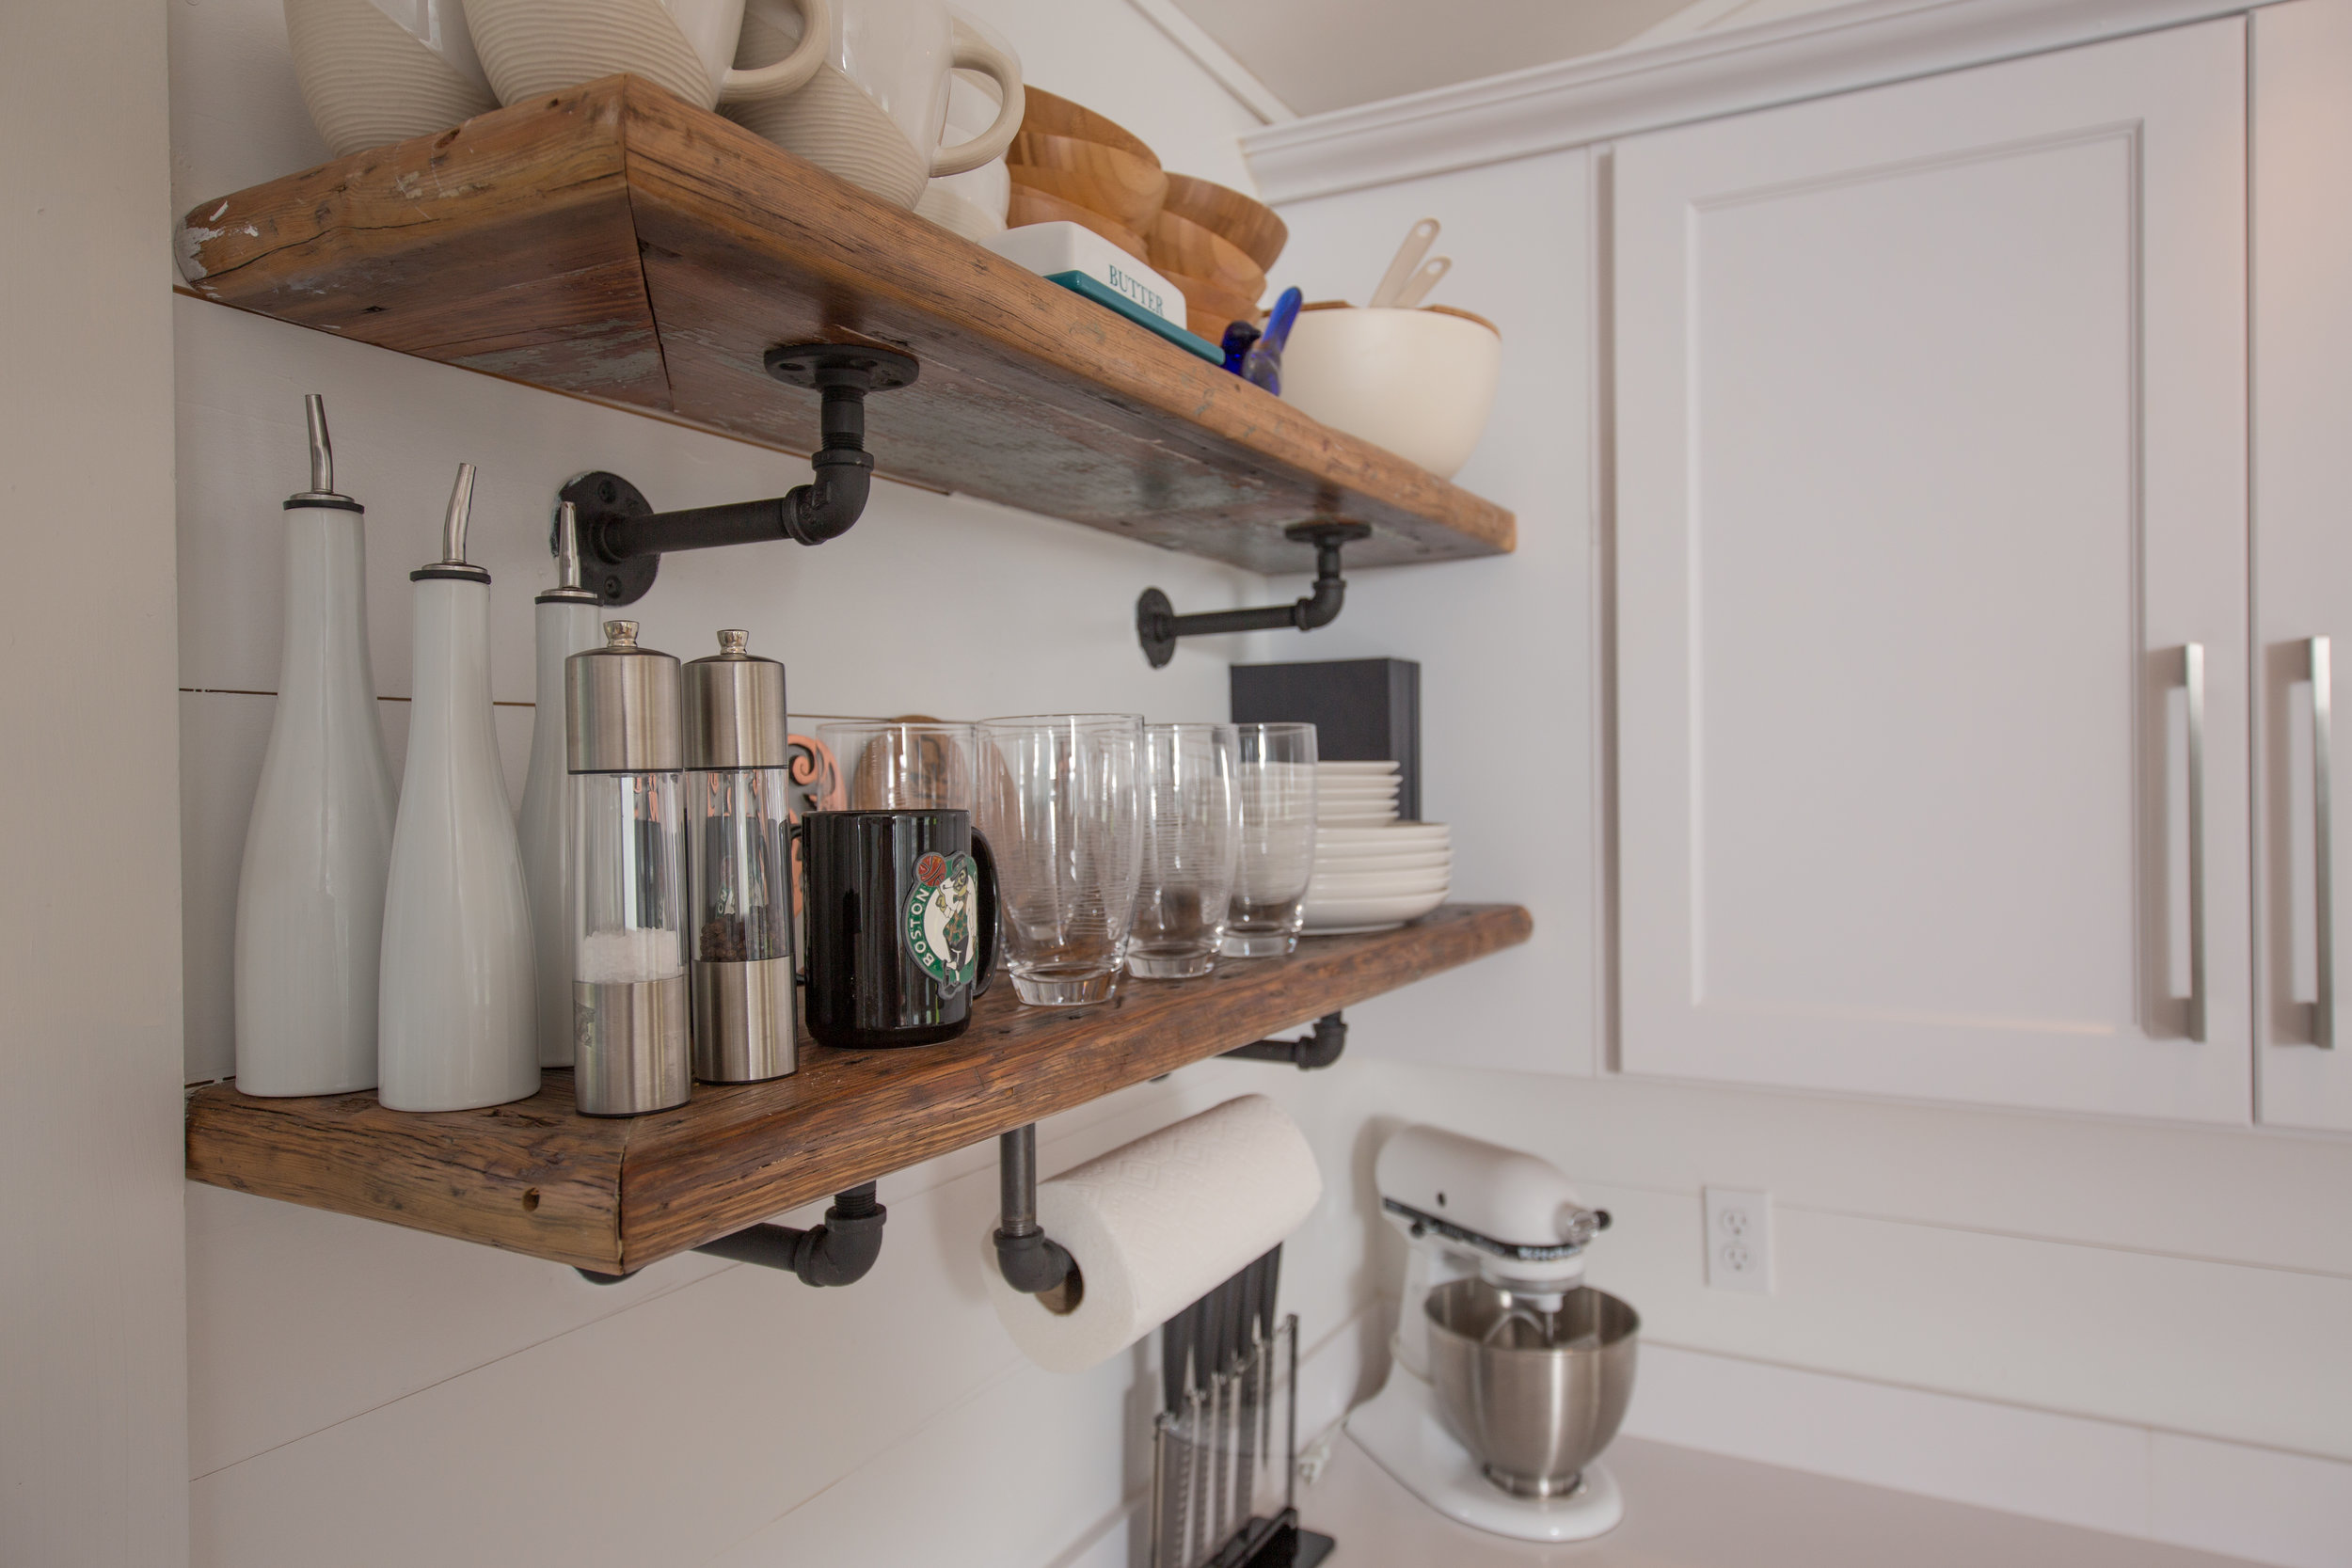 Rustic - reclaimed wood shelves from the local mills